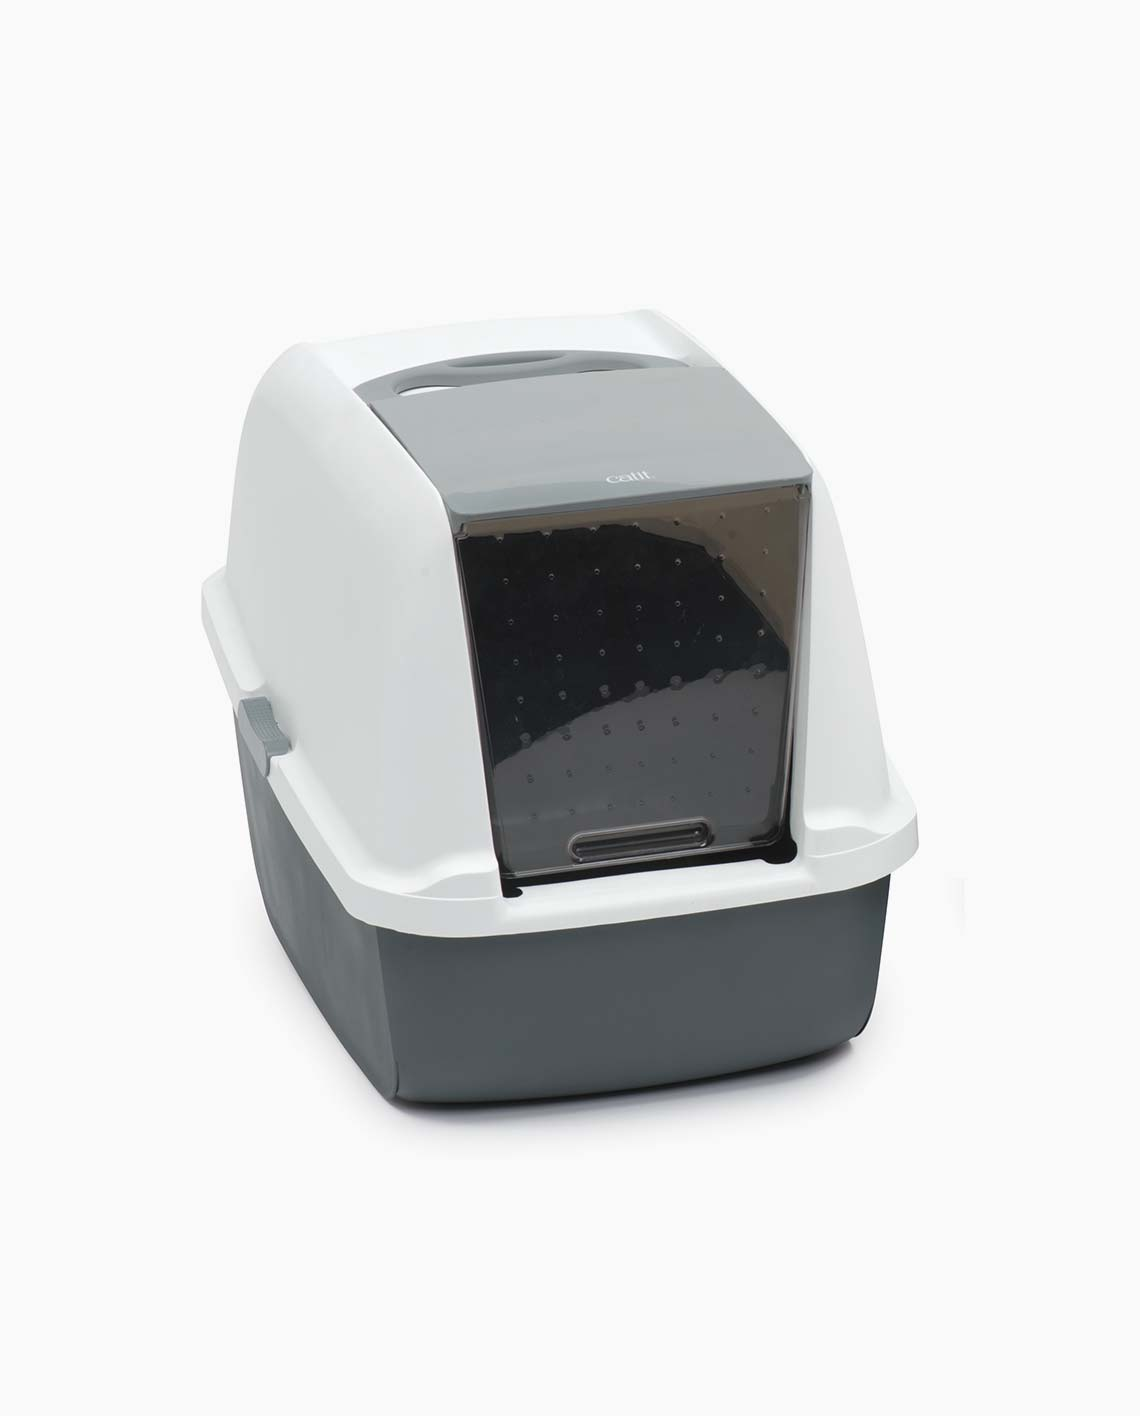 Regular litter box from the front